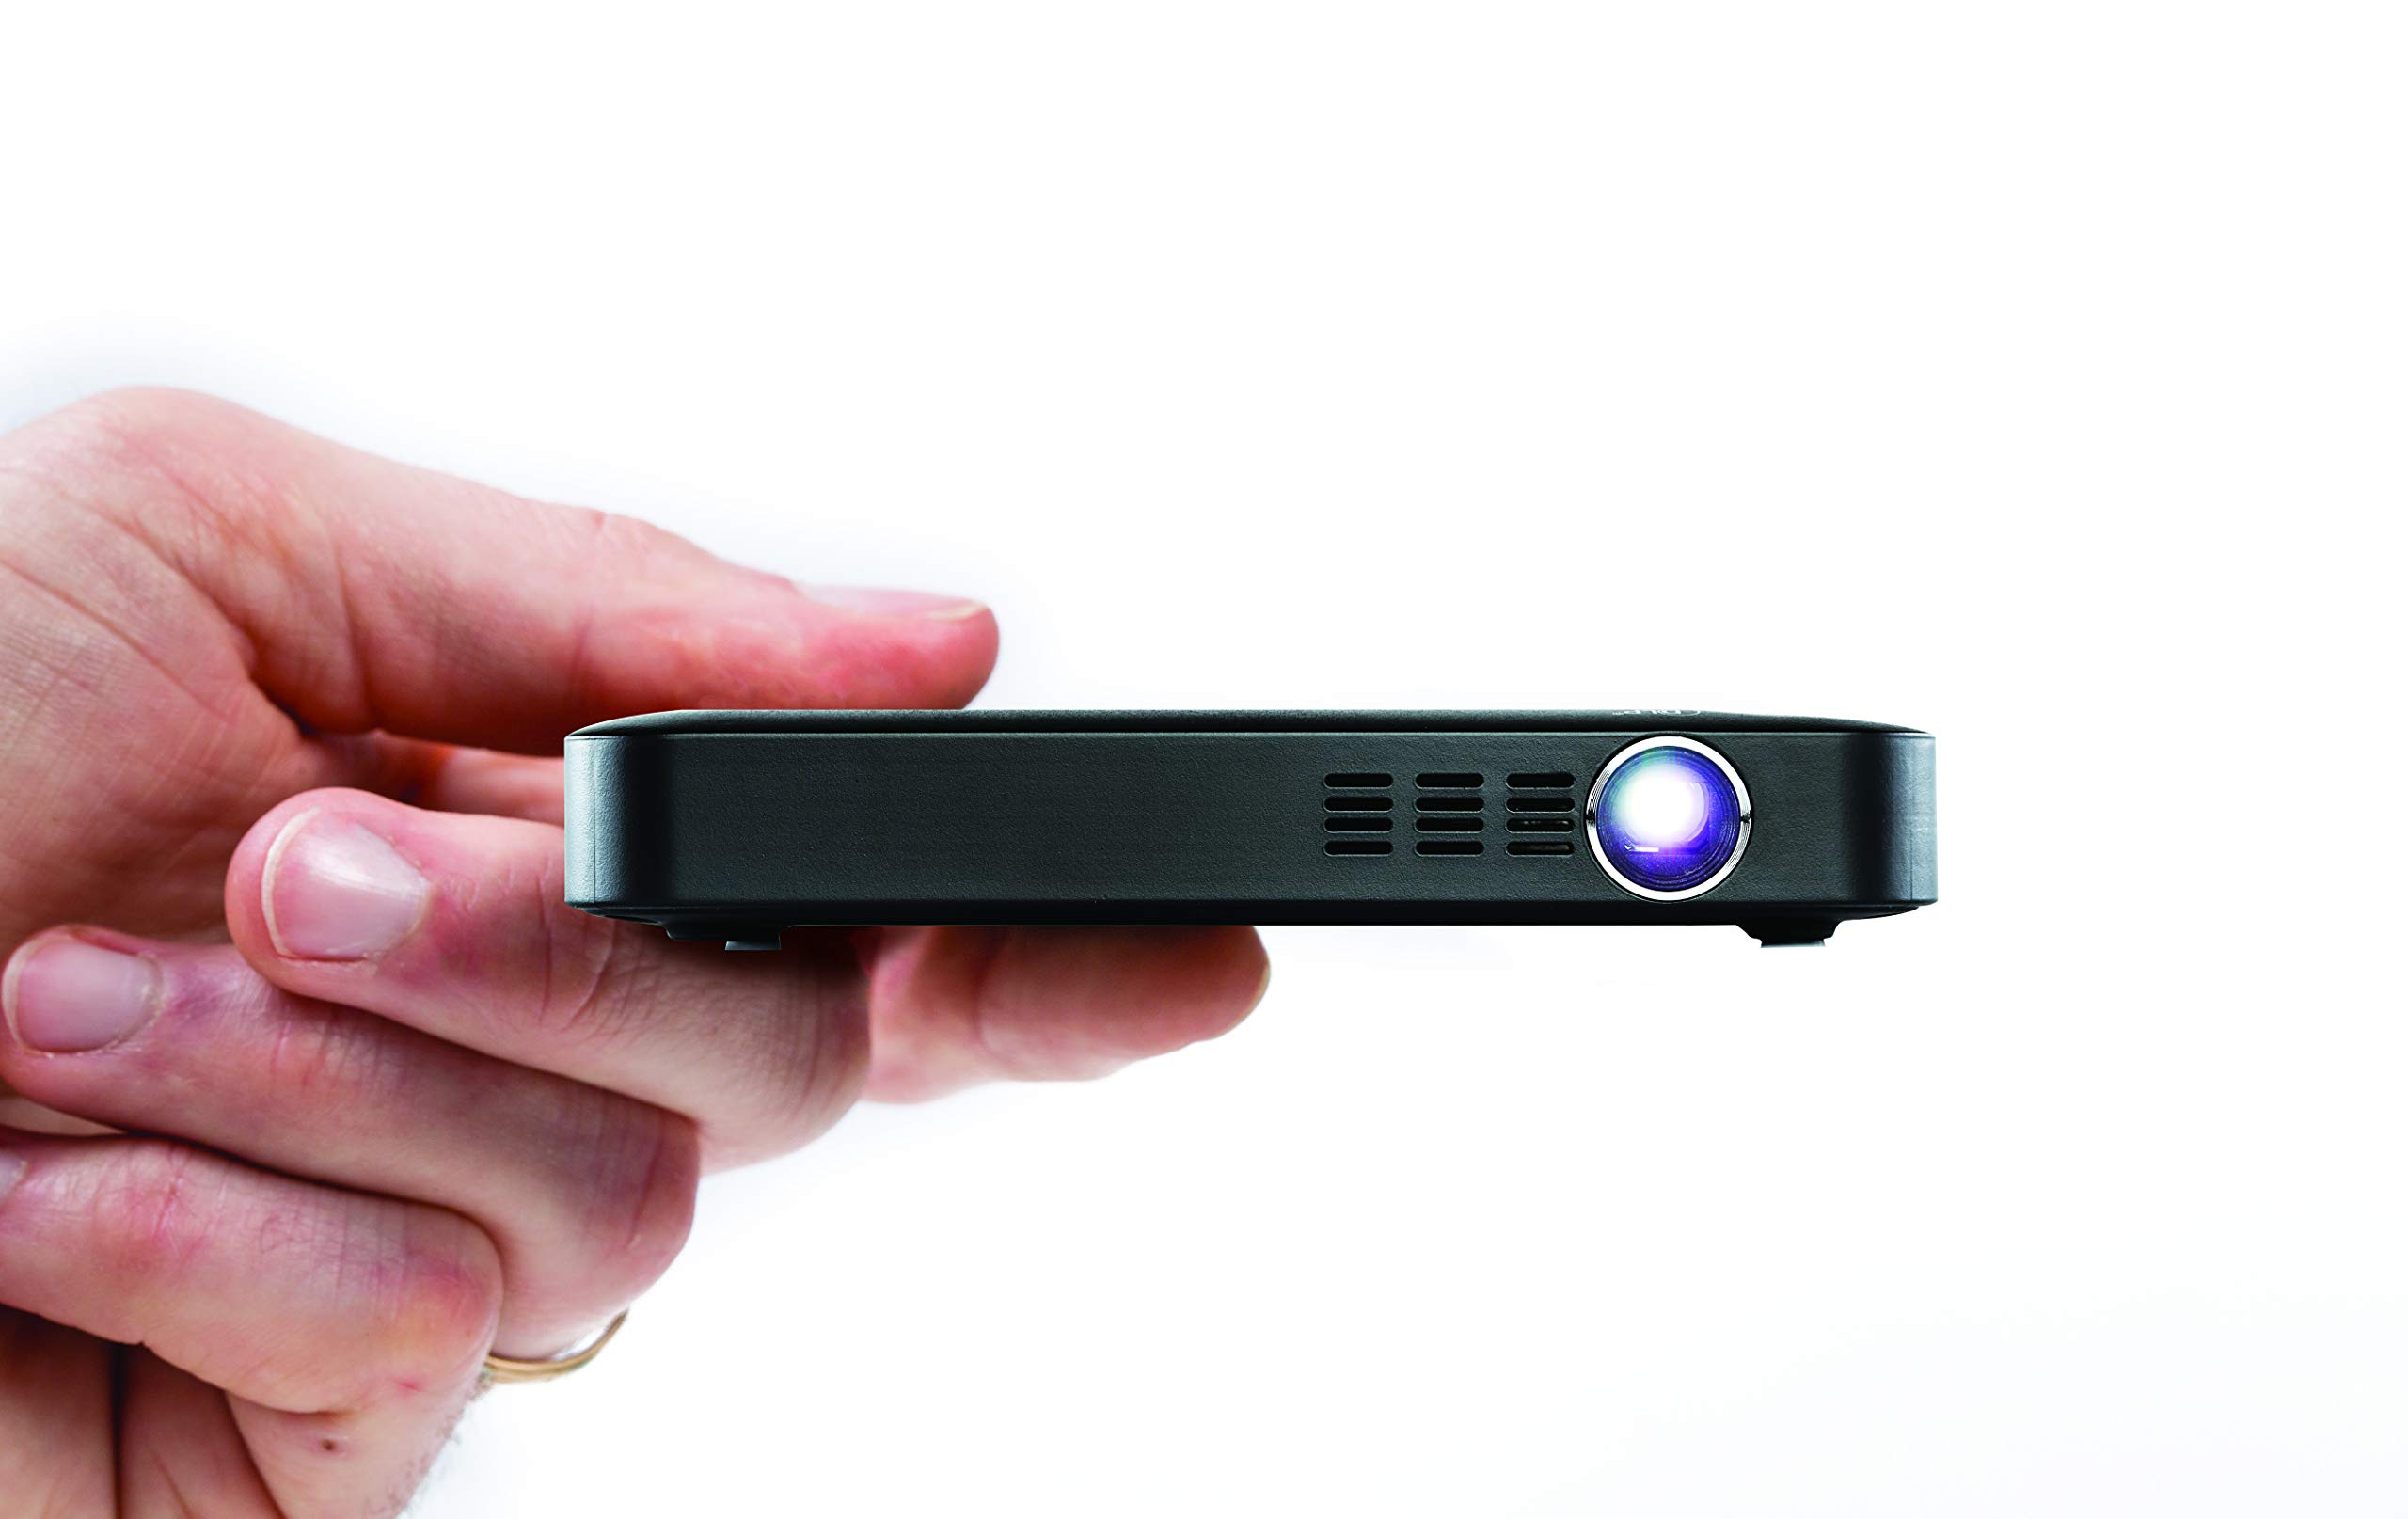 Miroir Micro Projector M55 (Renewed), Element Series, LED Lamp, Built-in Rechargeable Battery